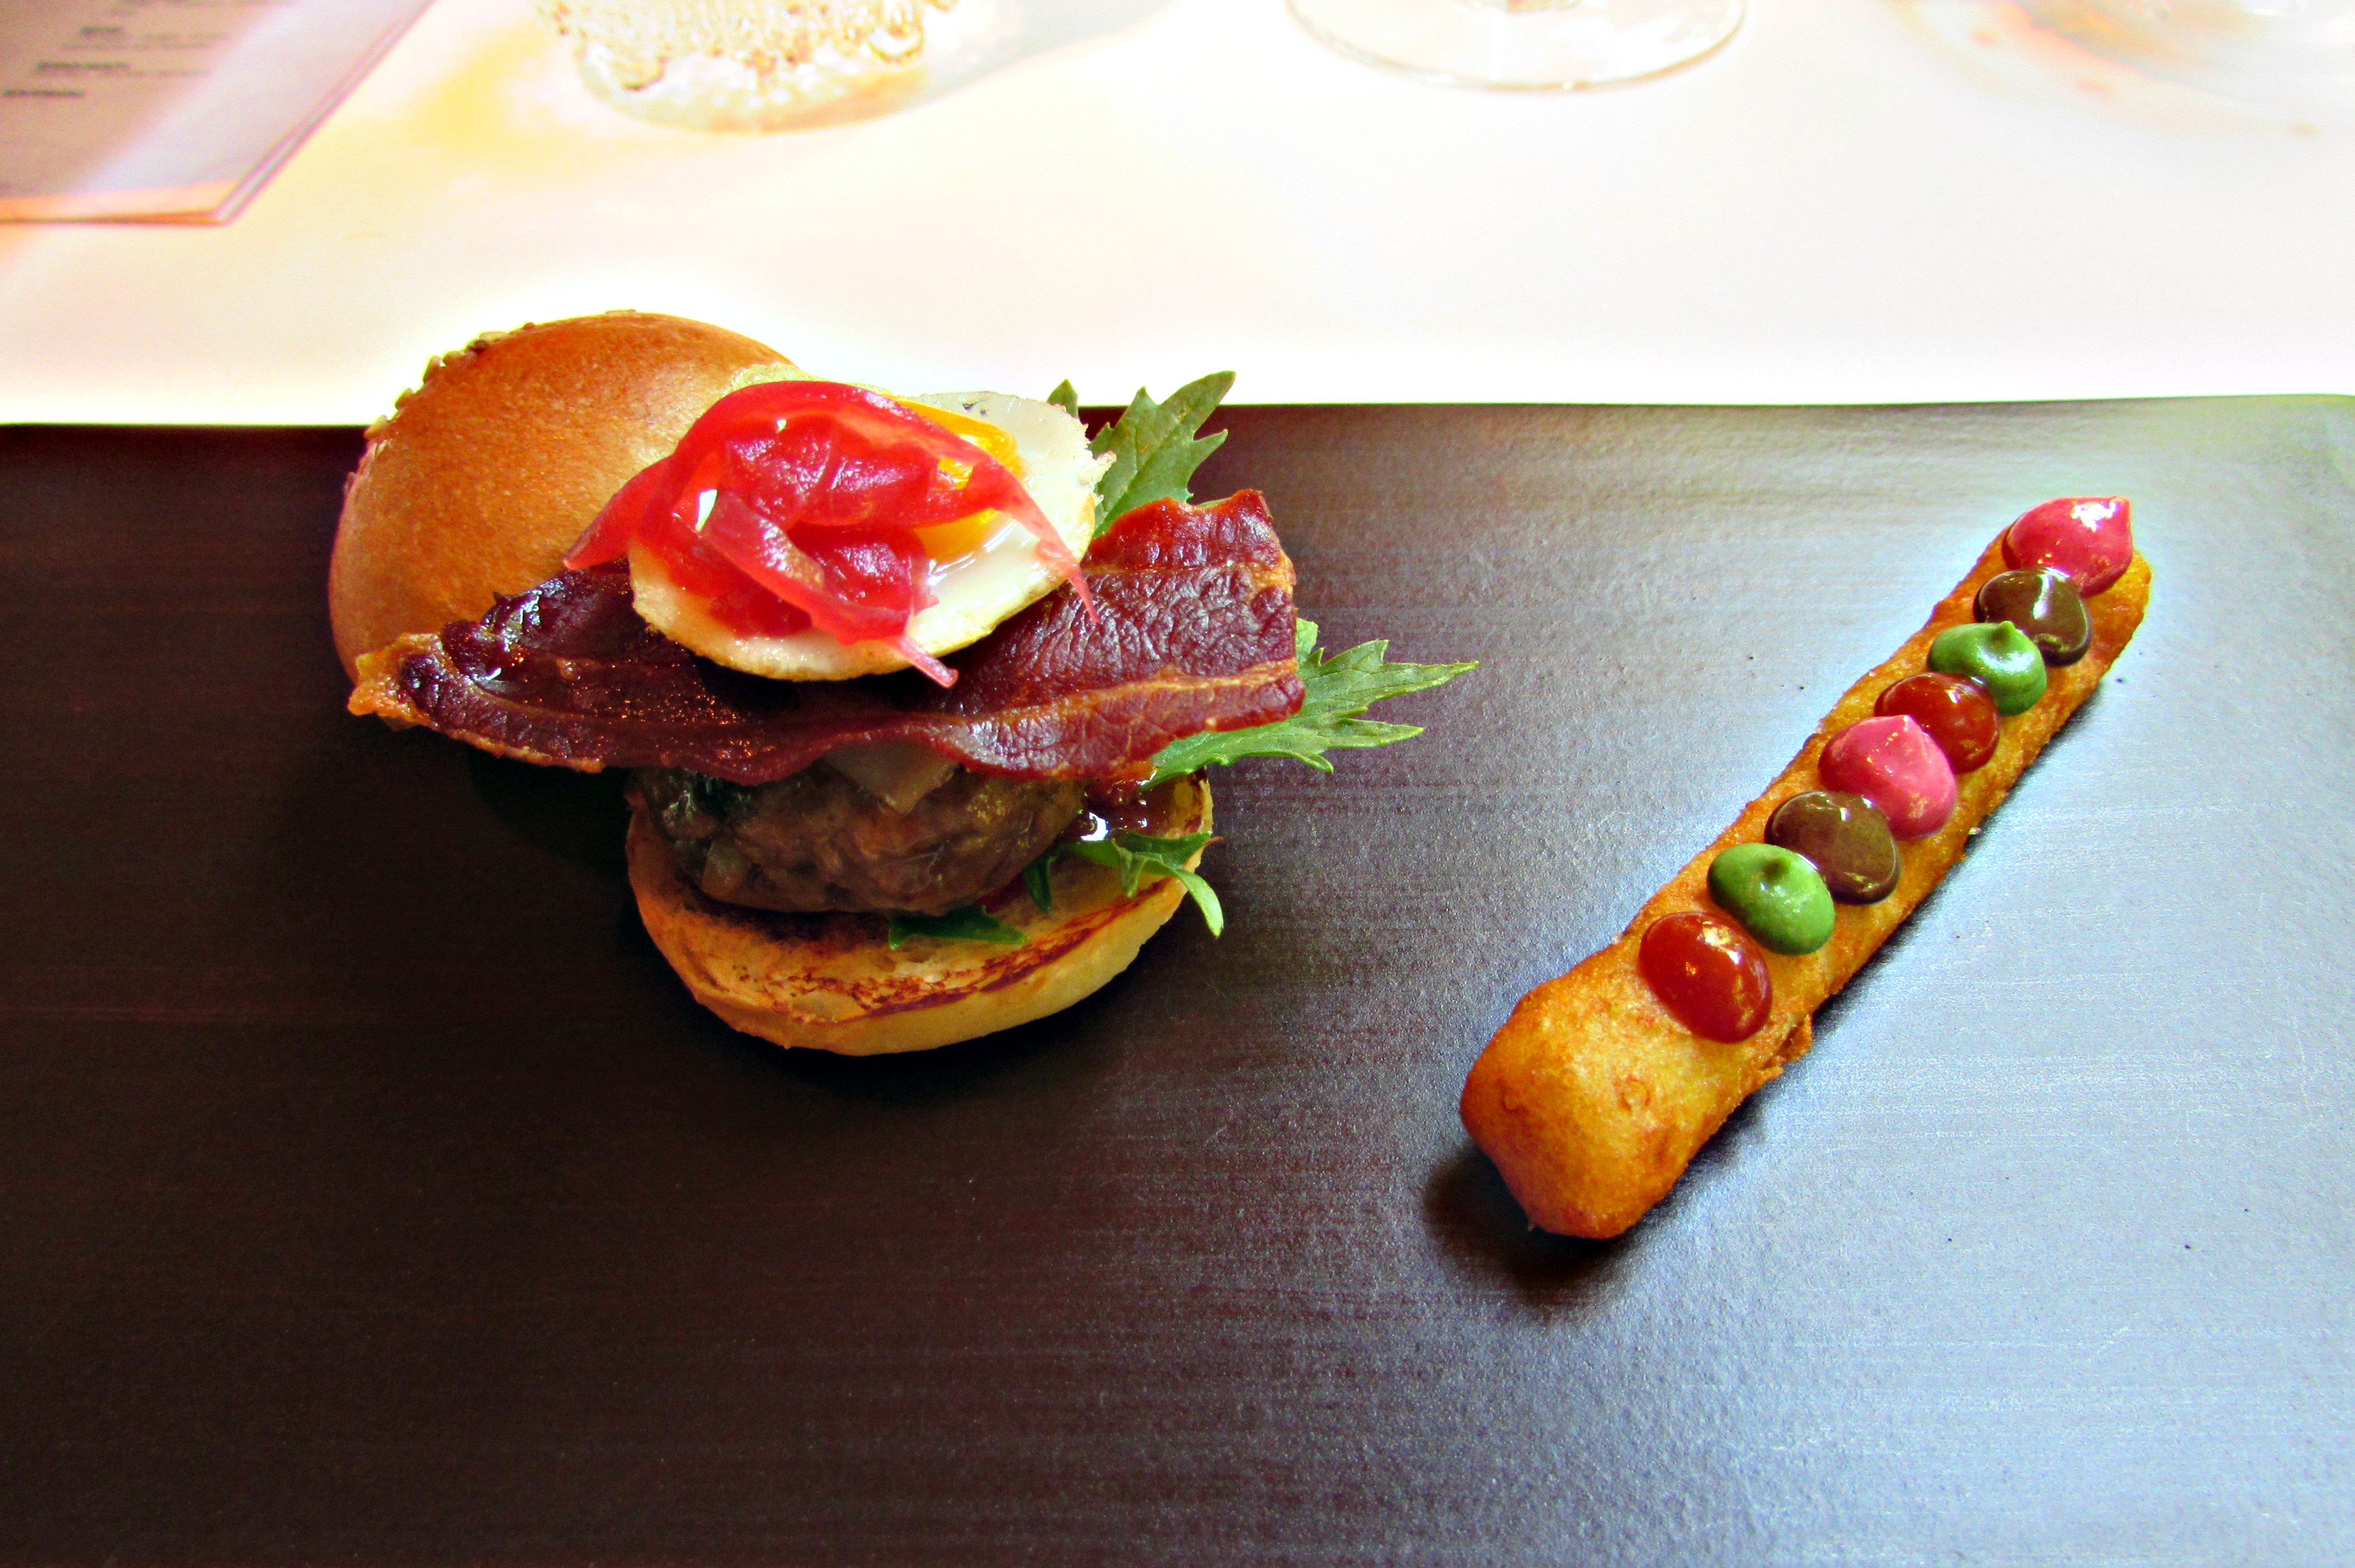 New York on a plate - Moments 2-Michelin starred burger representation